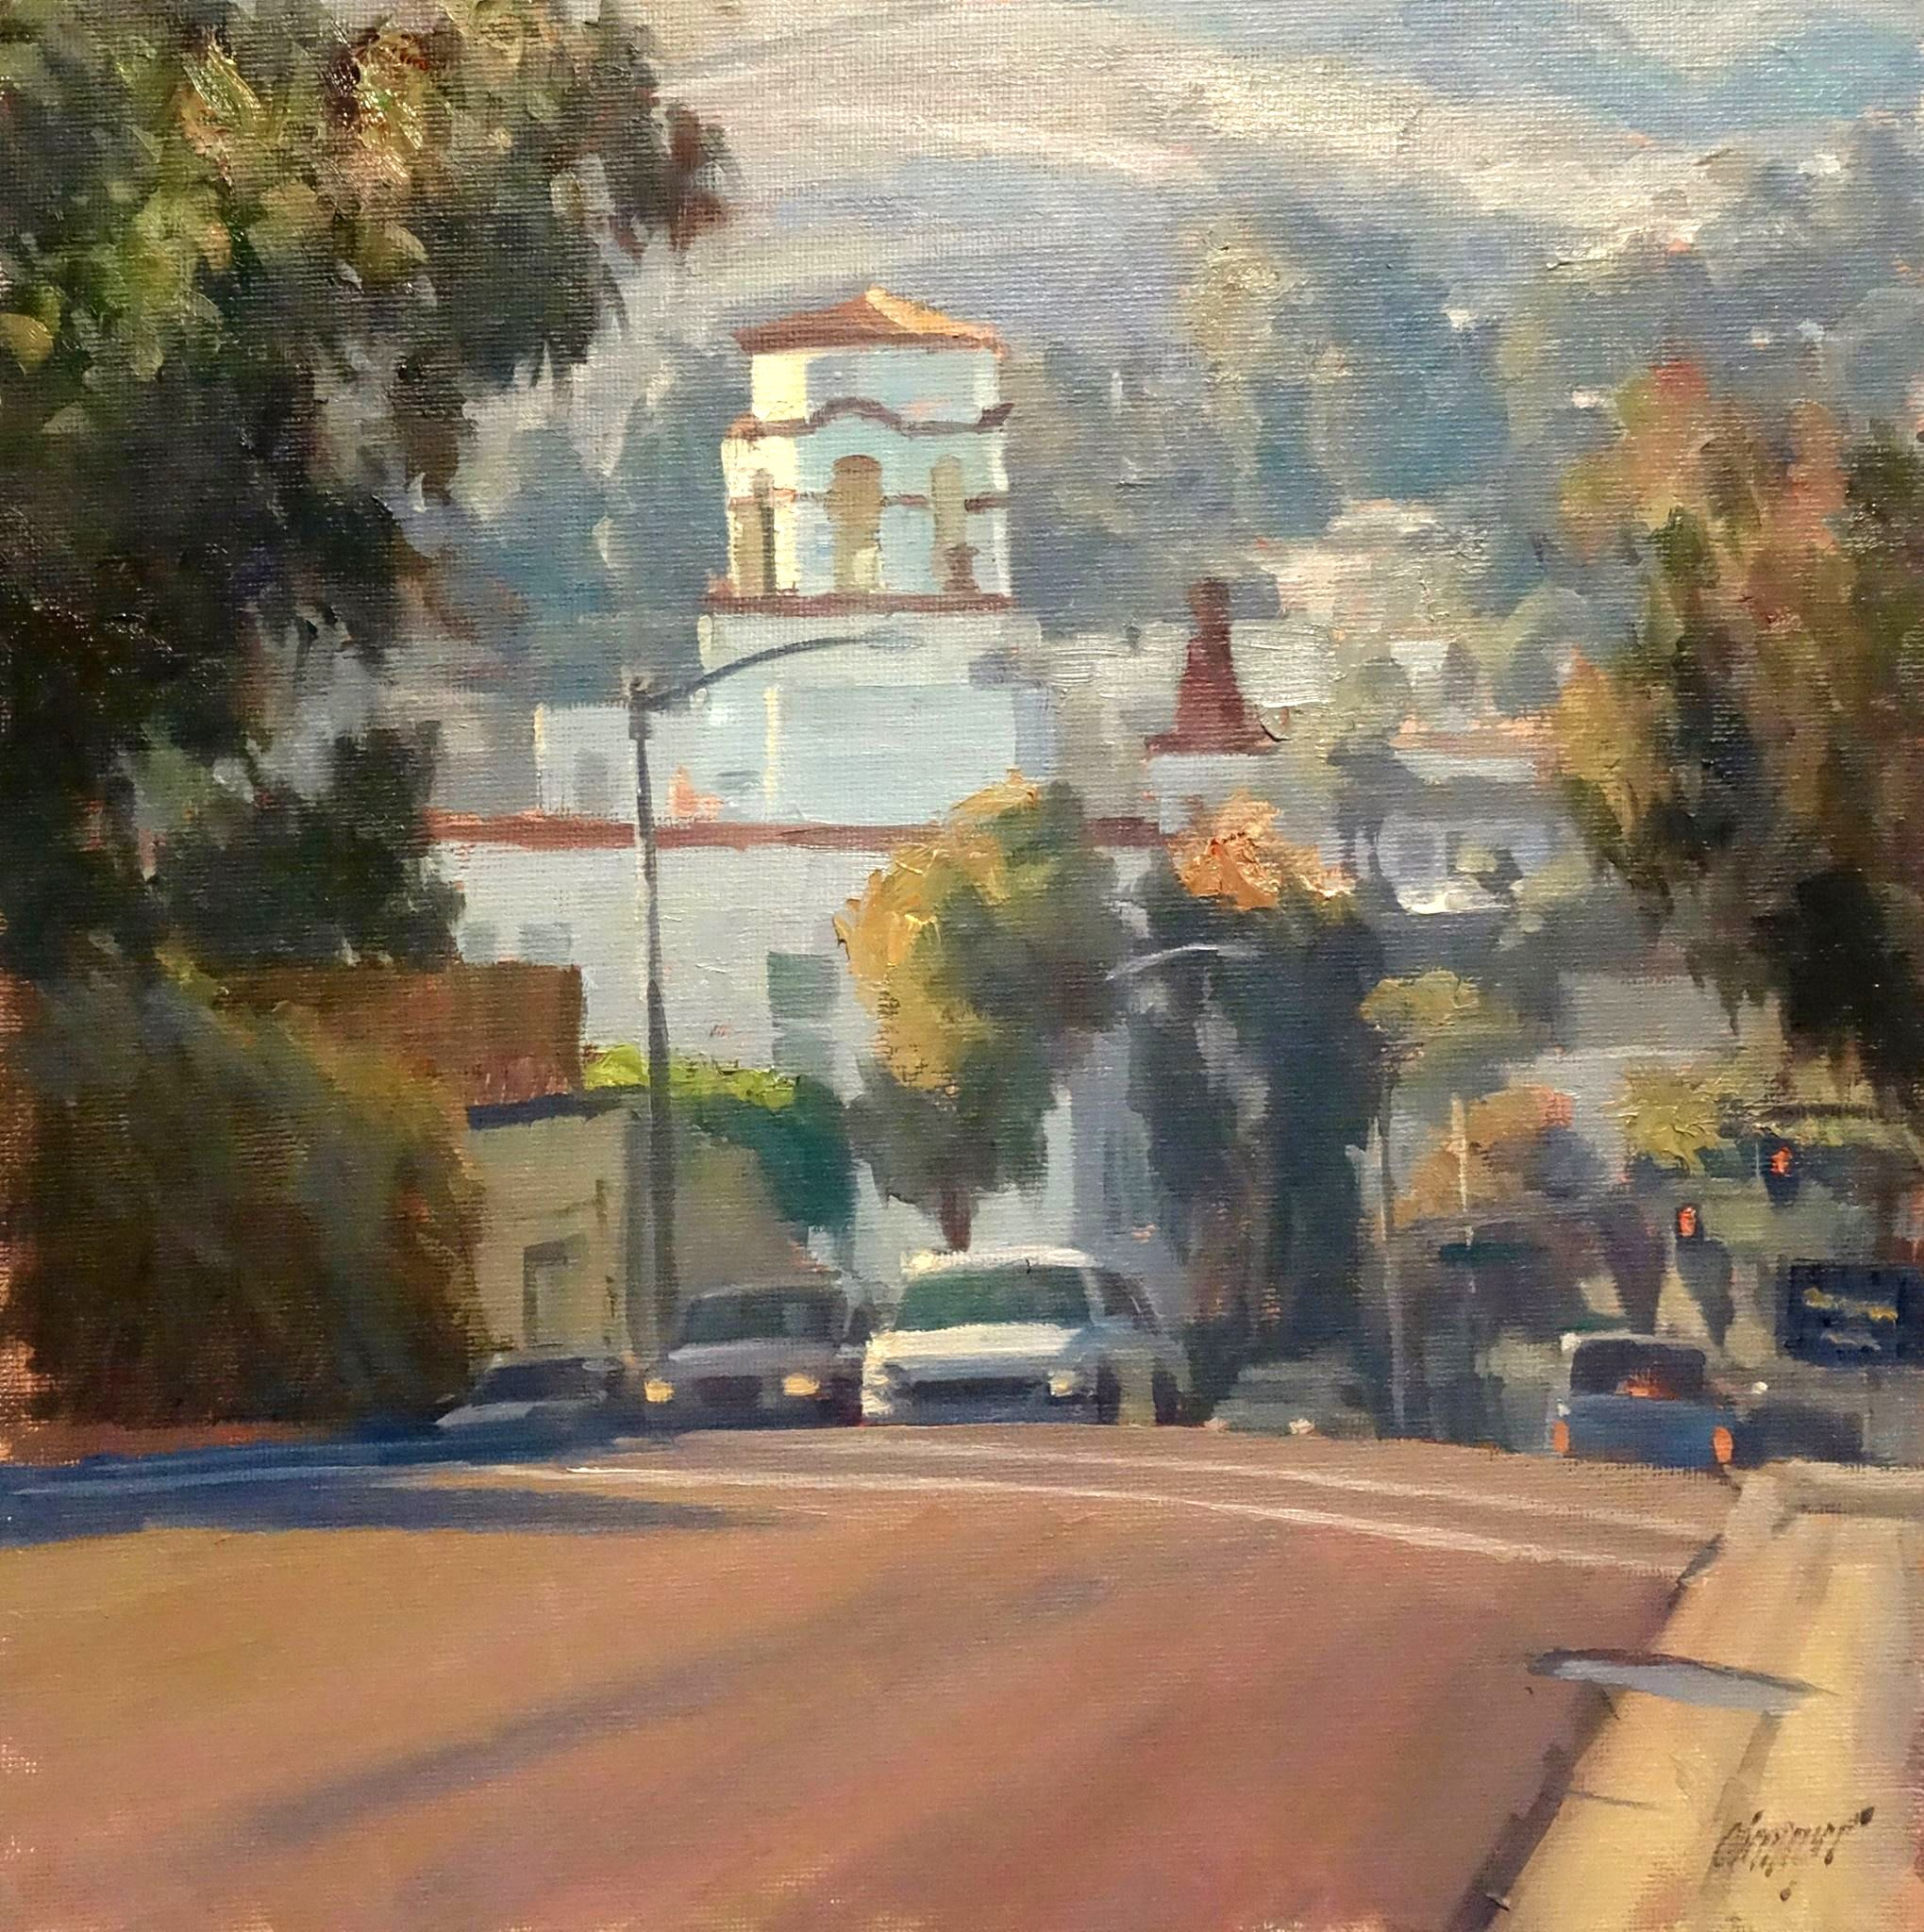 Laguna Canyon by Michael Harrison. Oil painting on